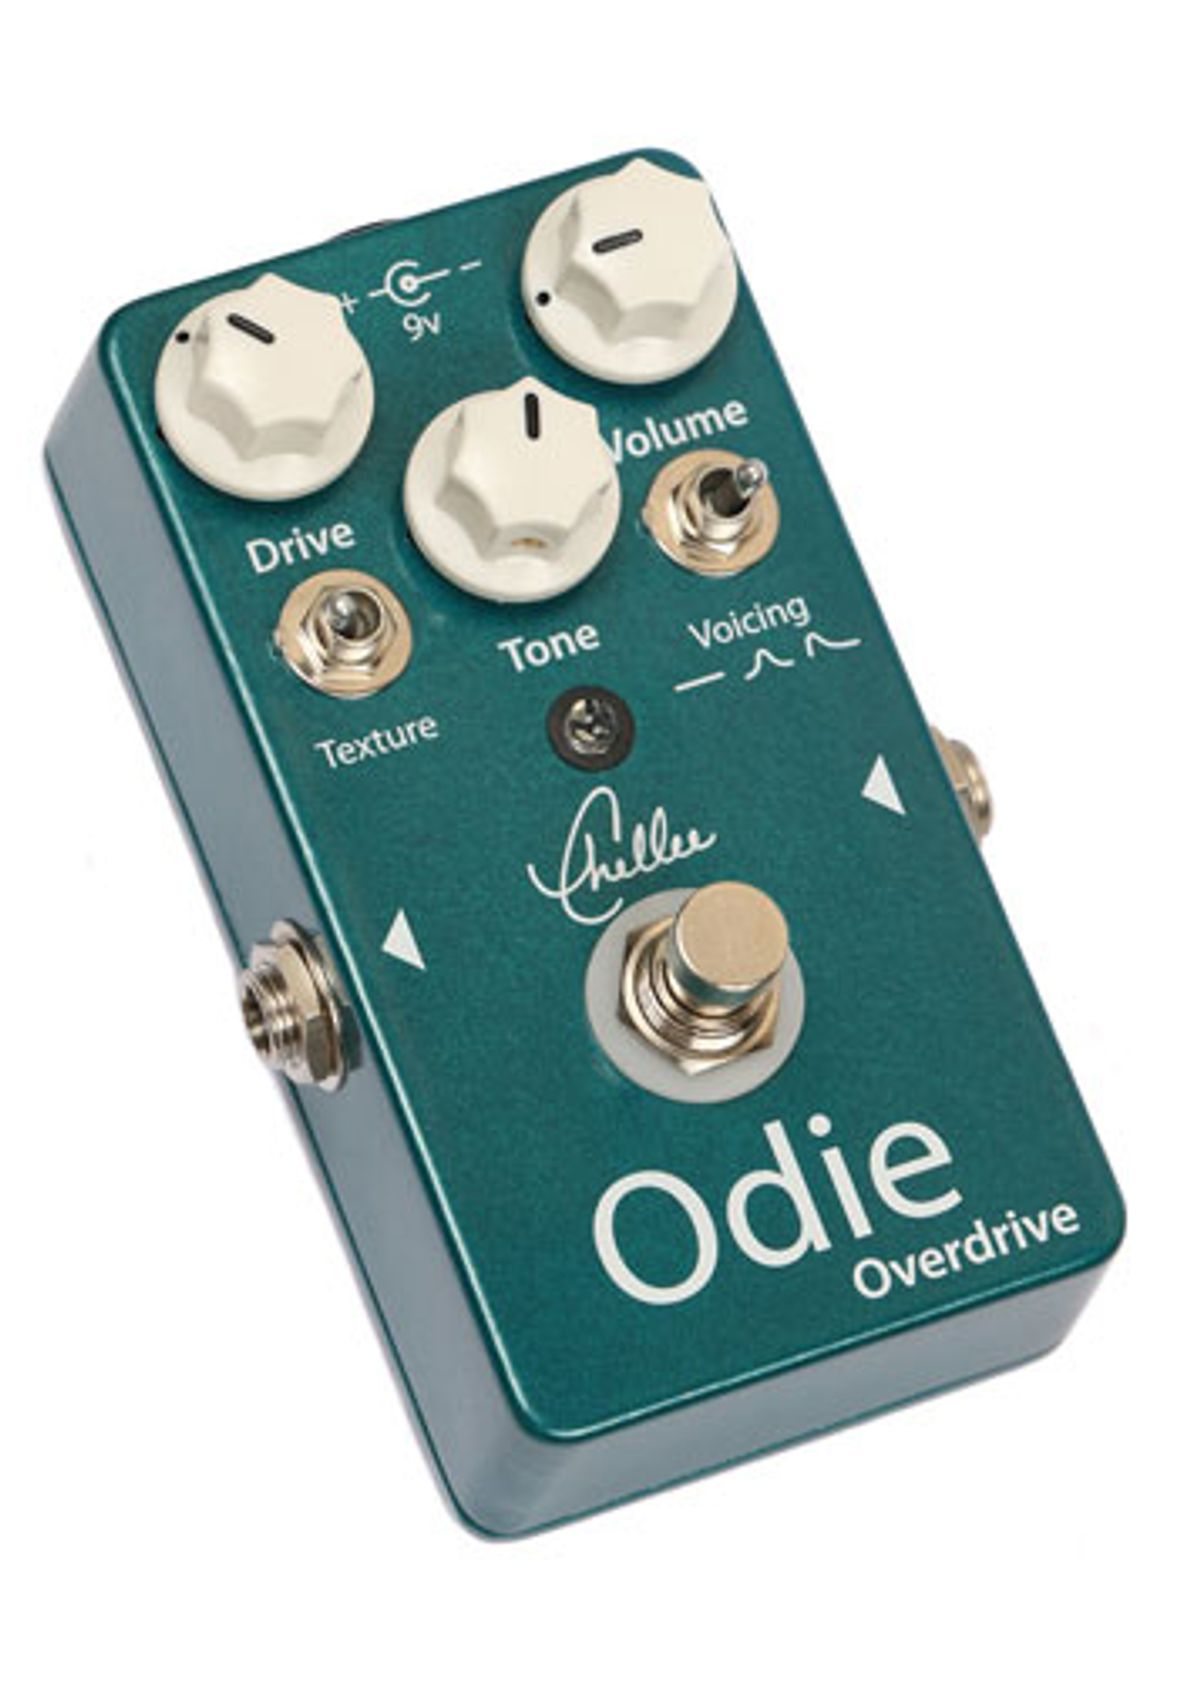 Chellee Guitars Introduces the Odie Overdrive Pedal